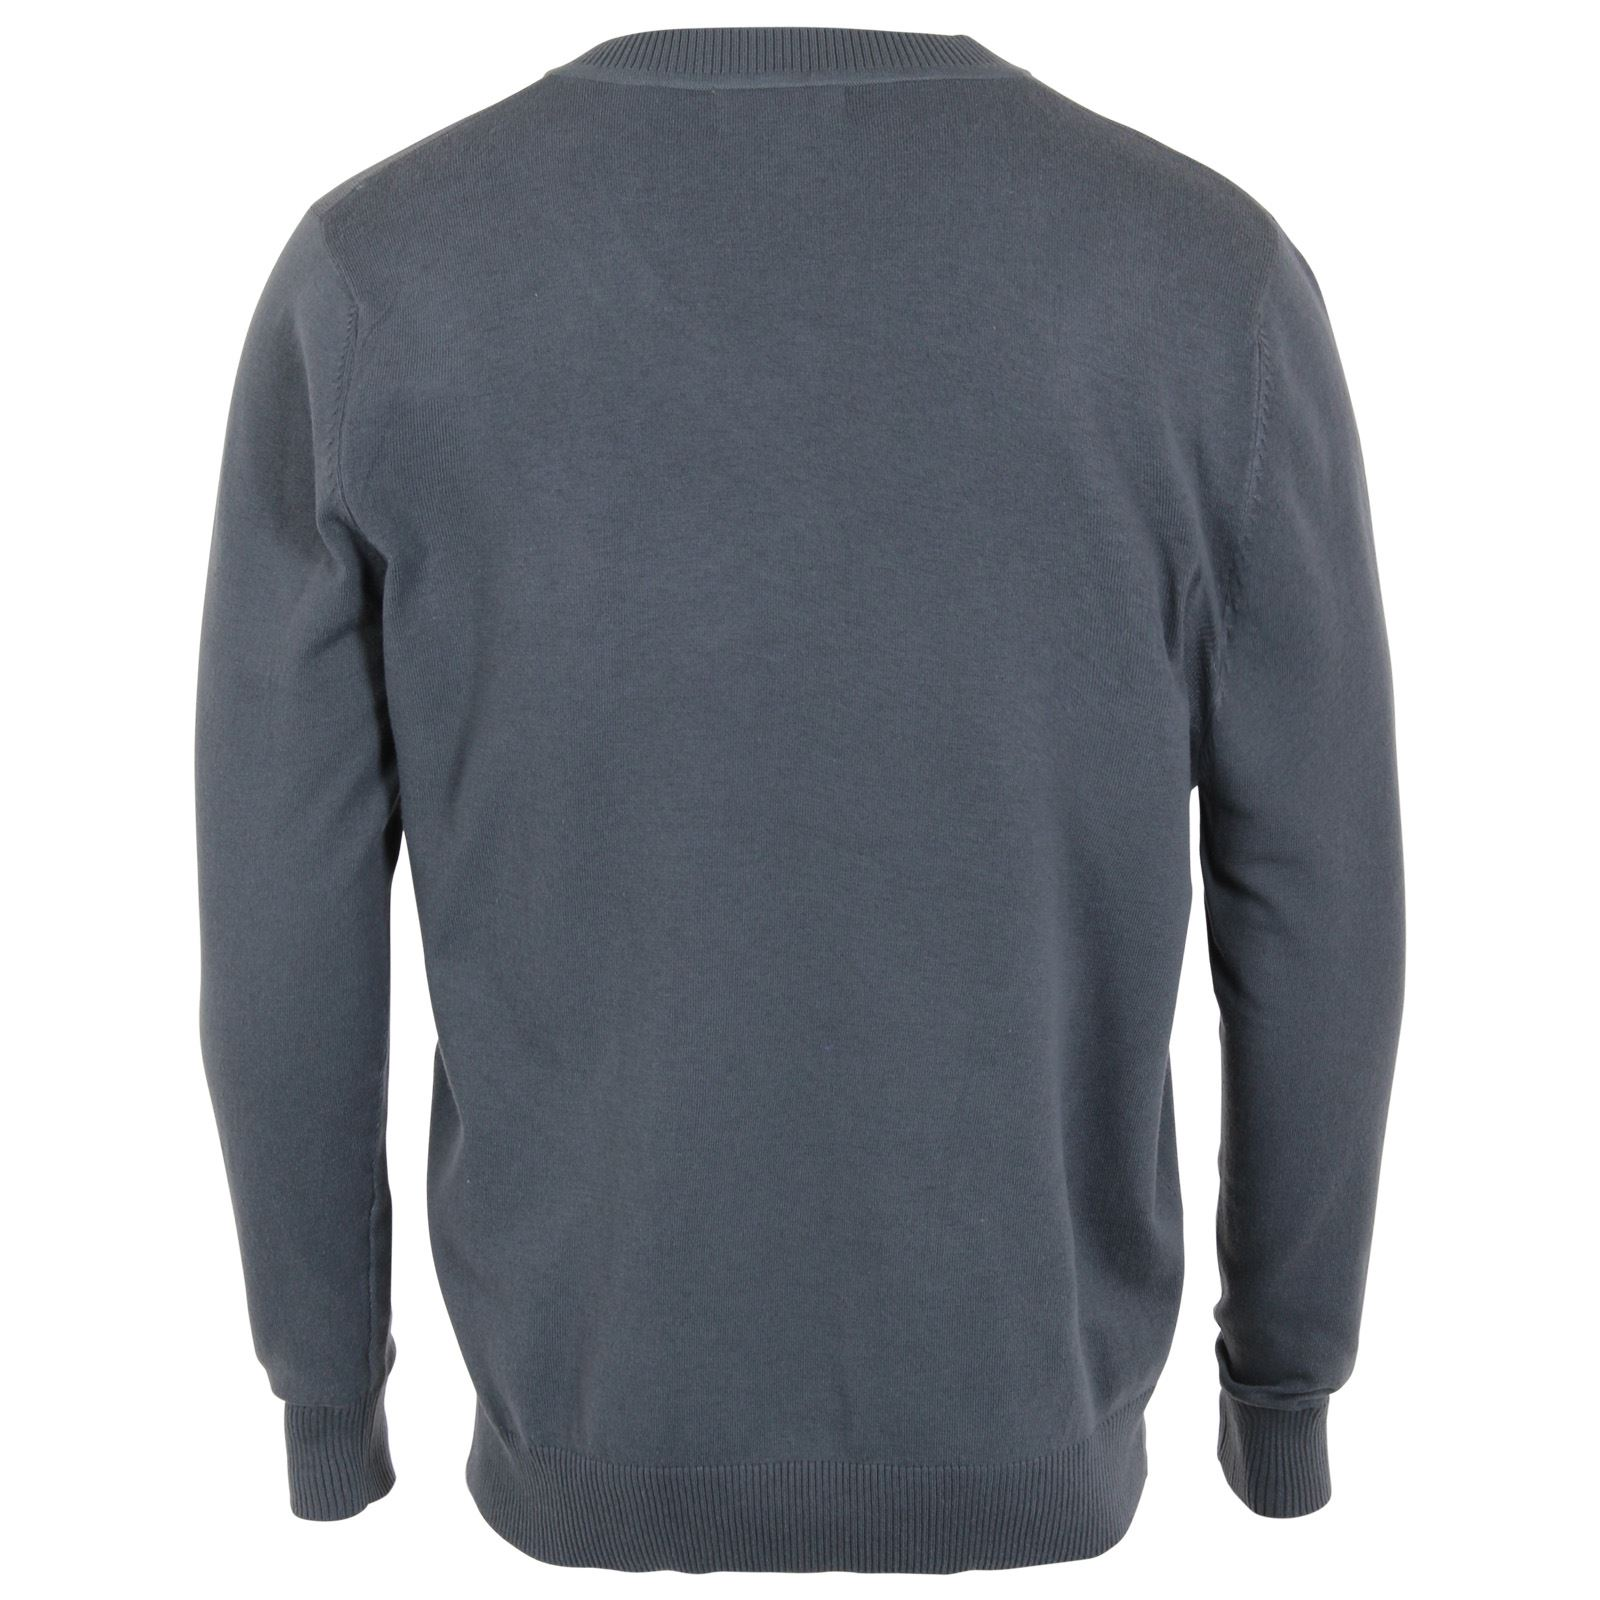 Mens Plain Colour Thin Knit Casual Crew Round Neck Jumper Sweater Pullover Top